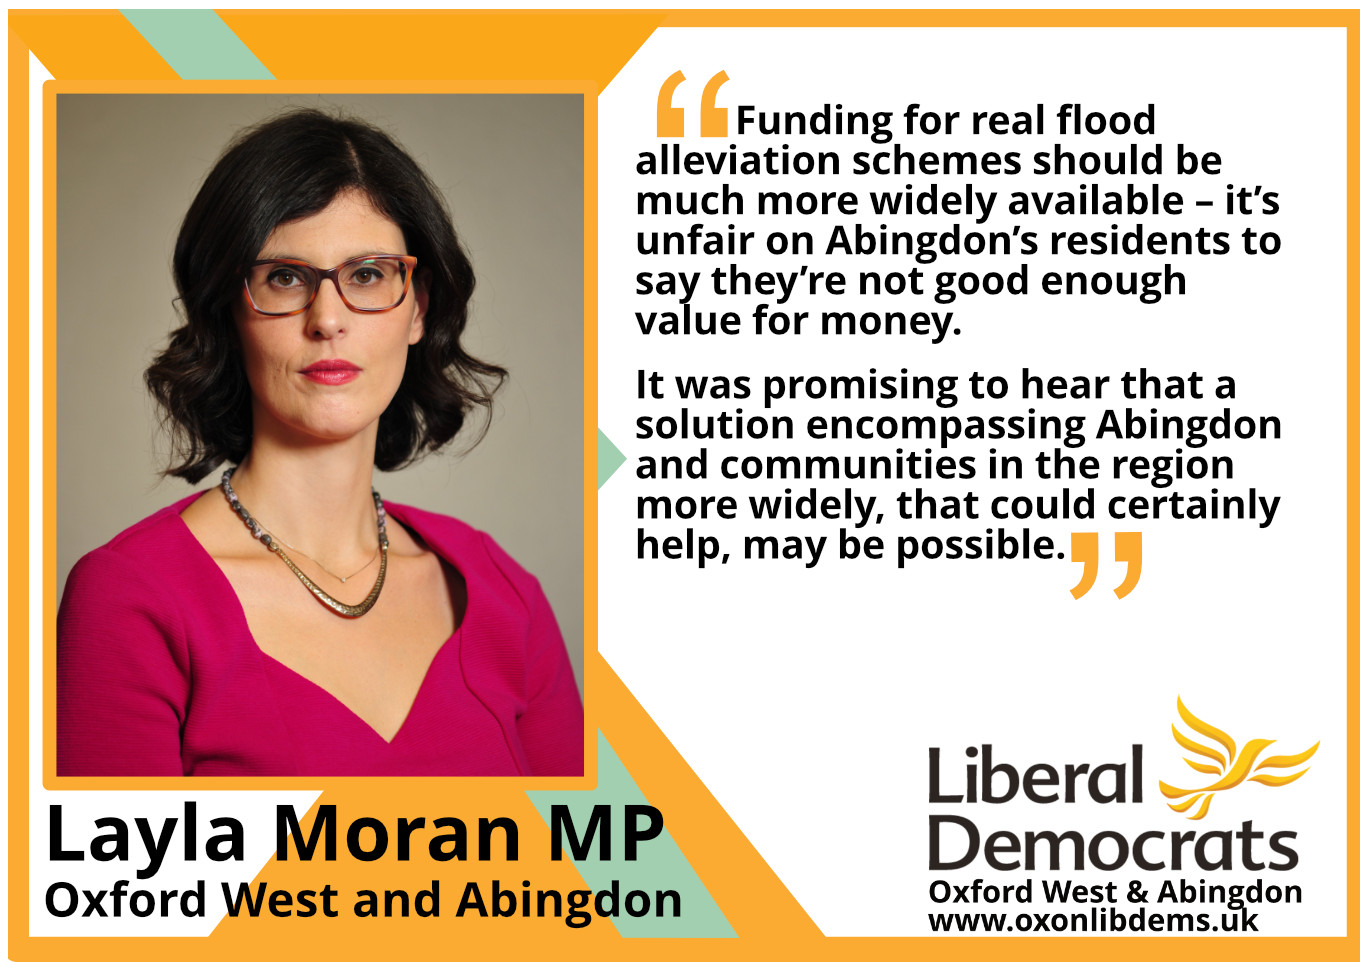 Key_Funding for real flood alleviation schemes should be much more widely available – it's unfair on Abingdon's residents to say they're not good enough value for money. It was promising to hear that a solution encompassing Abingdon and communities in the region more widely, that could certainly help, may be possible